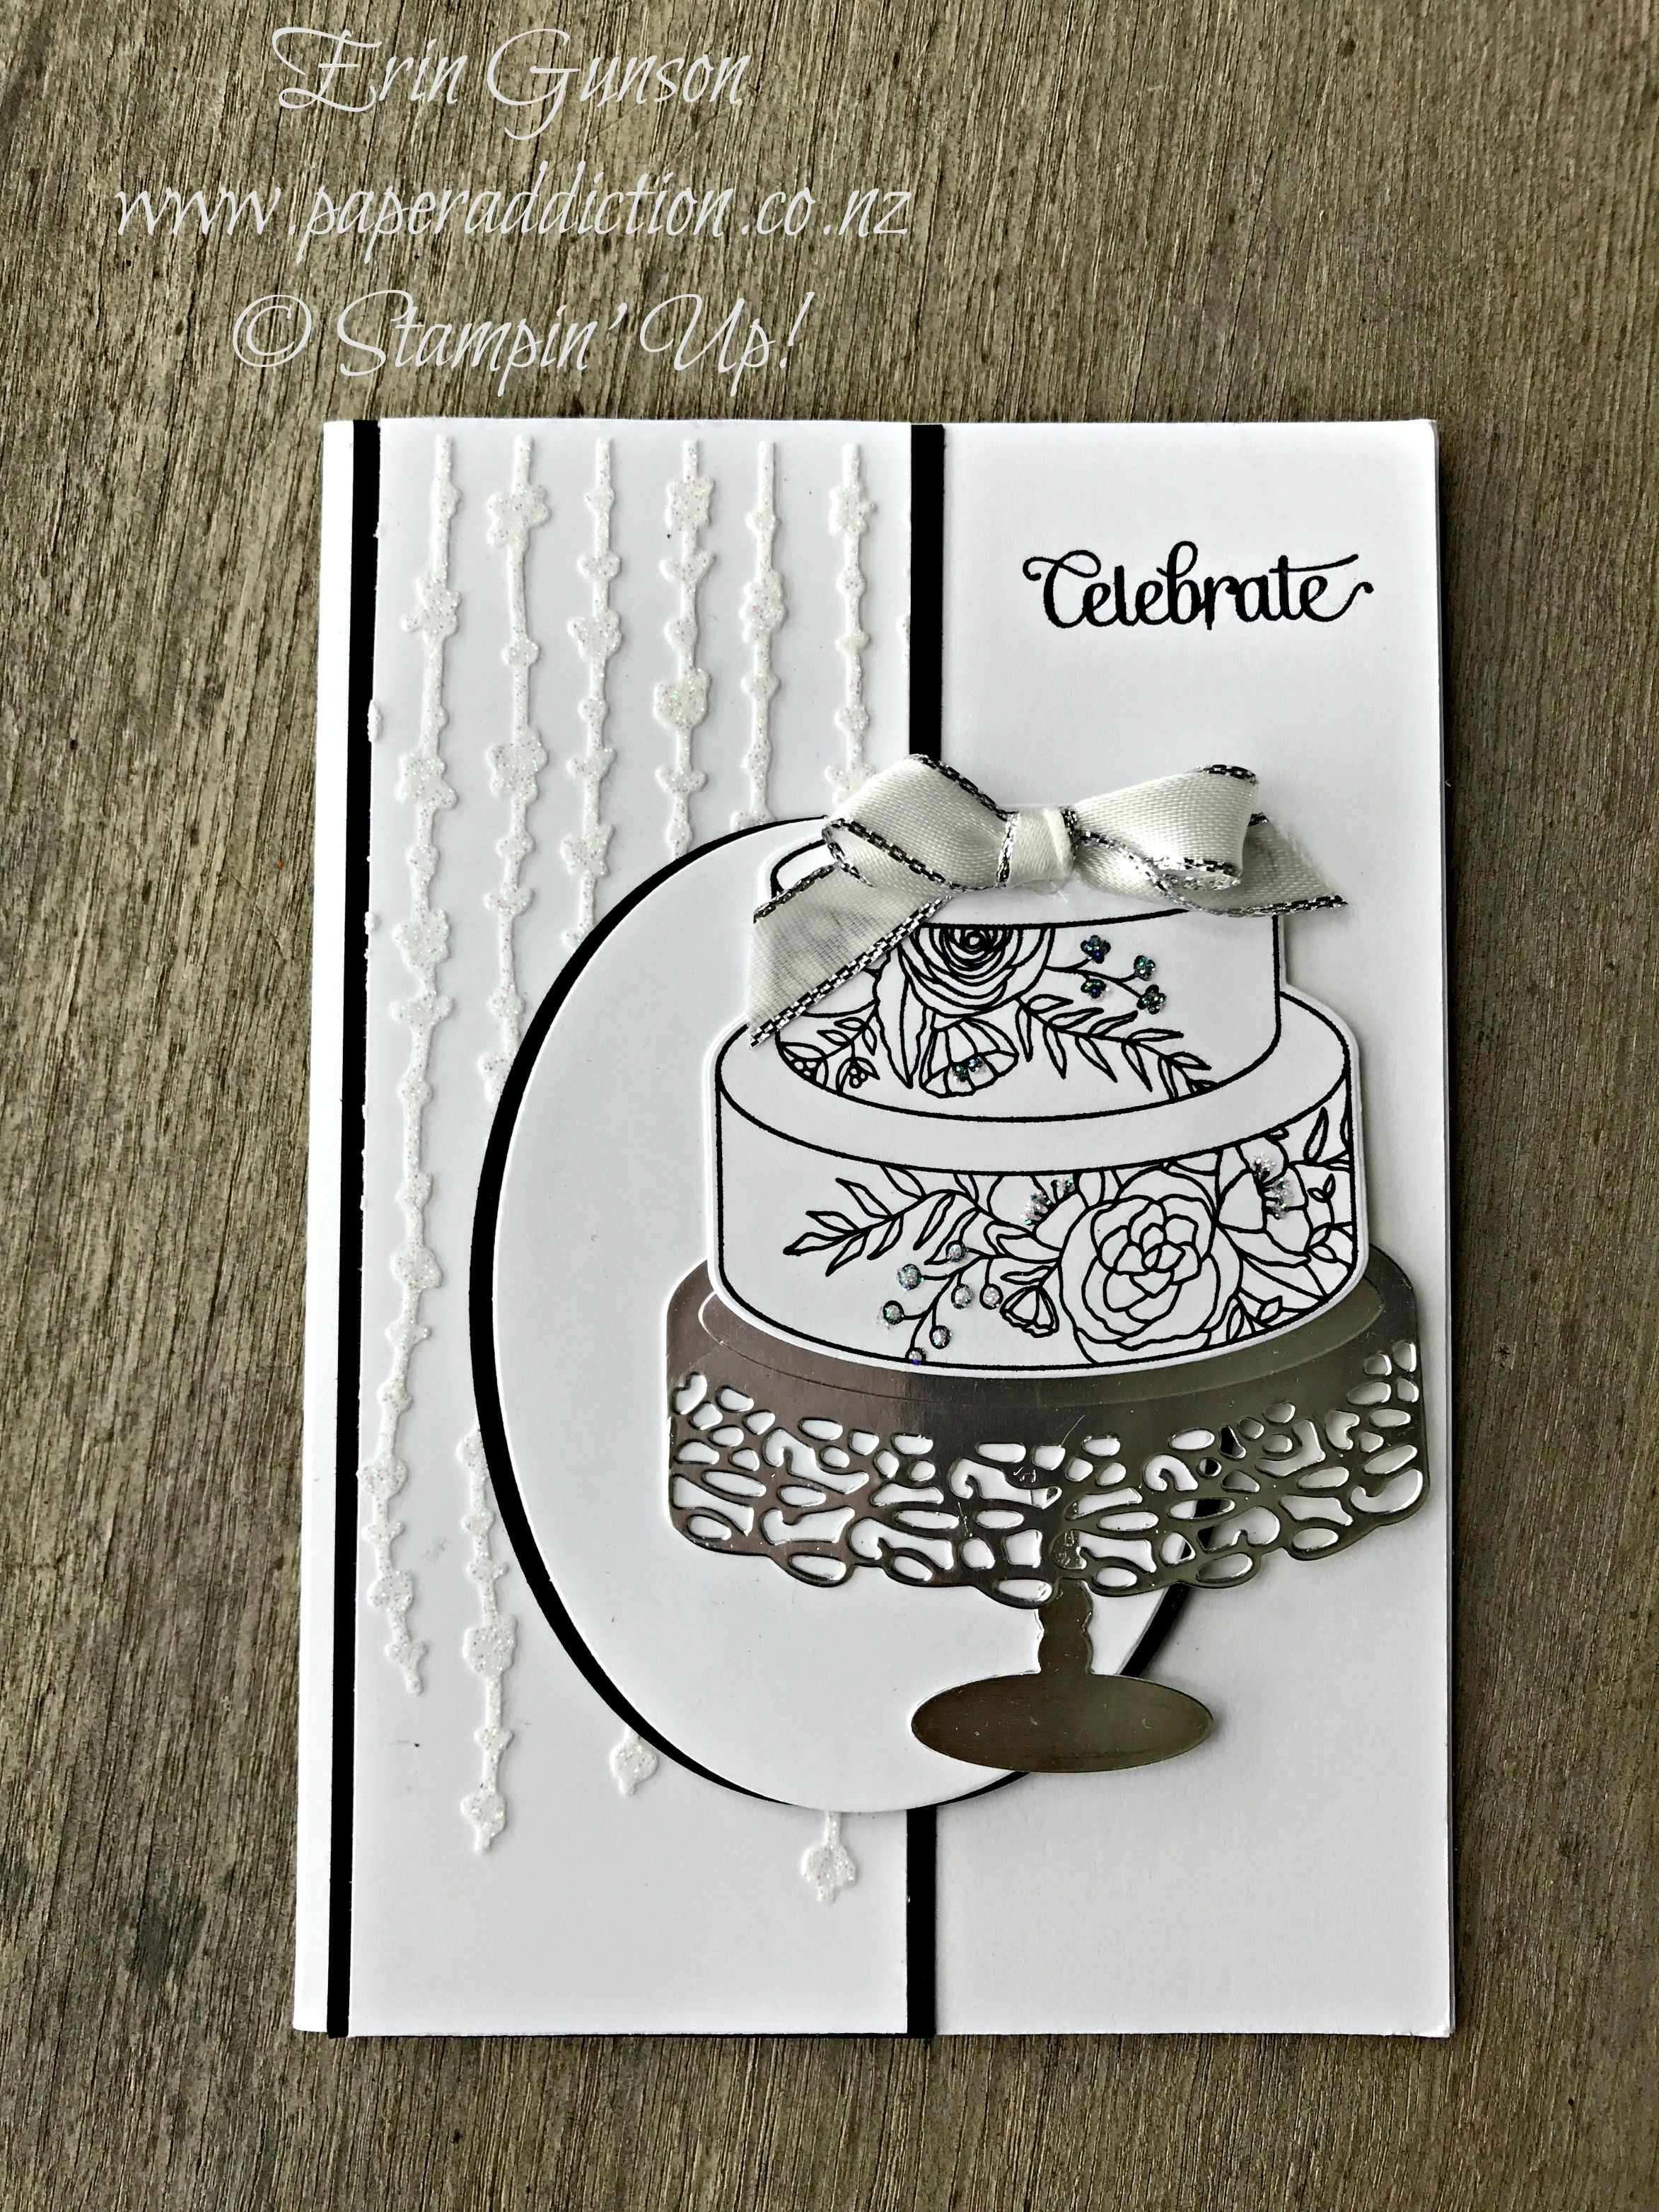 Pin On Stampin Up Occasions Catalog 2018